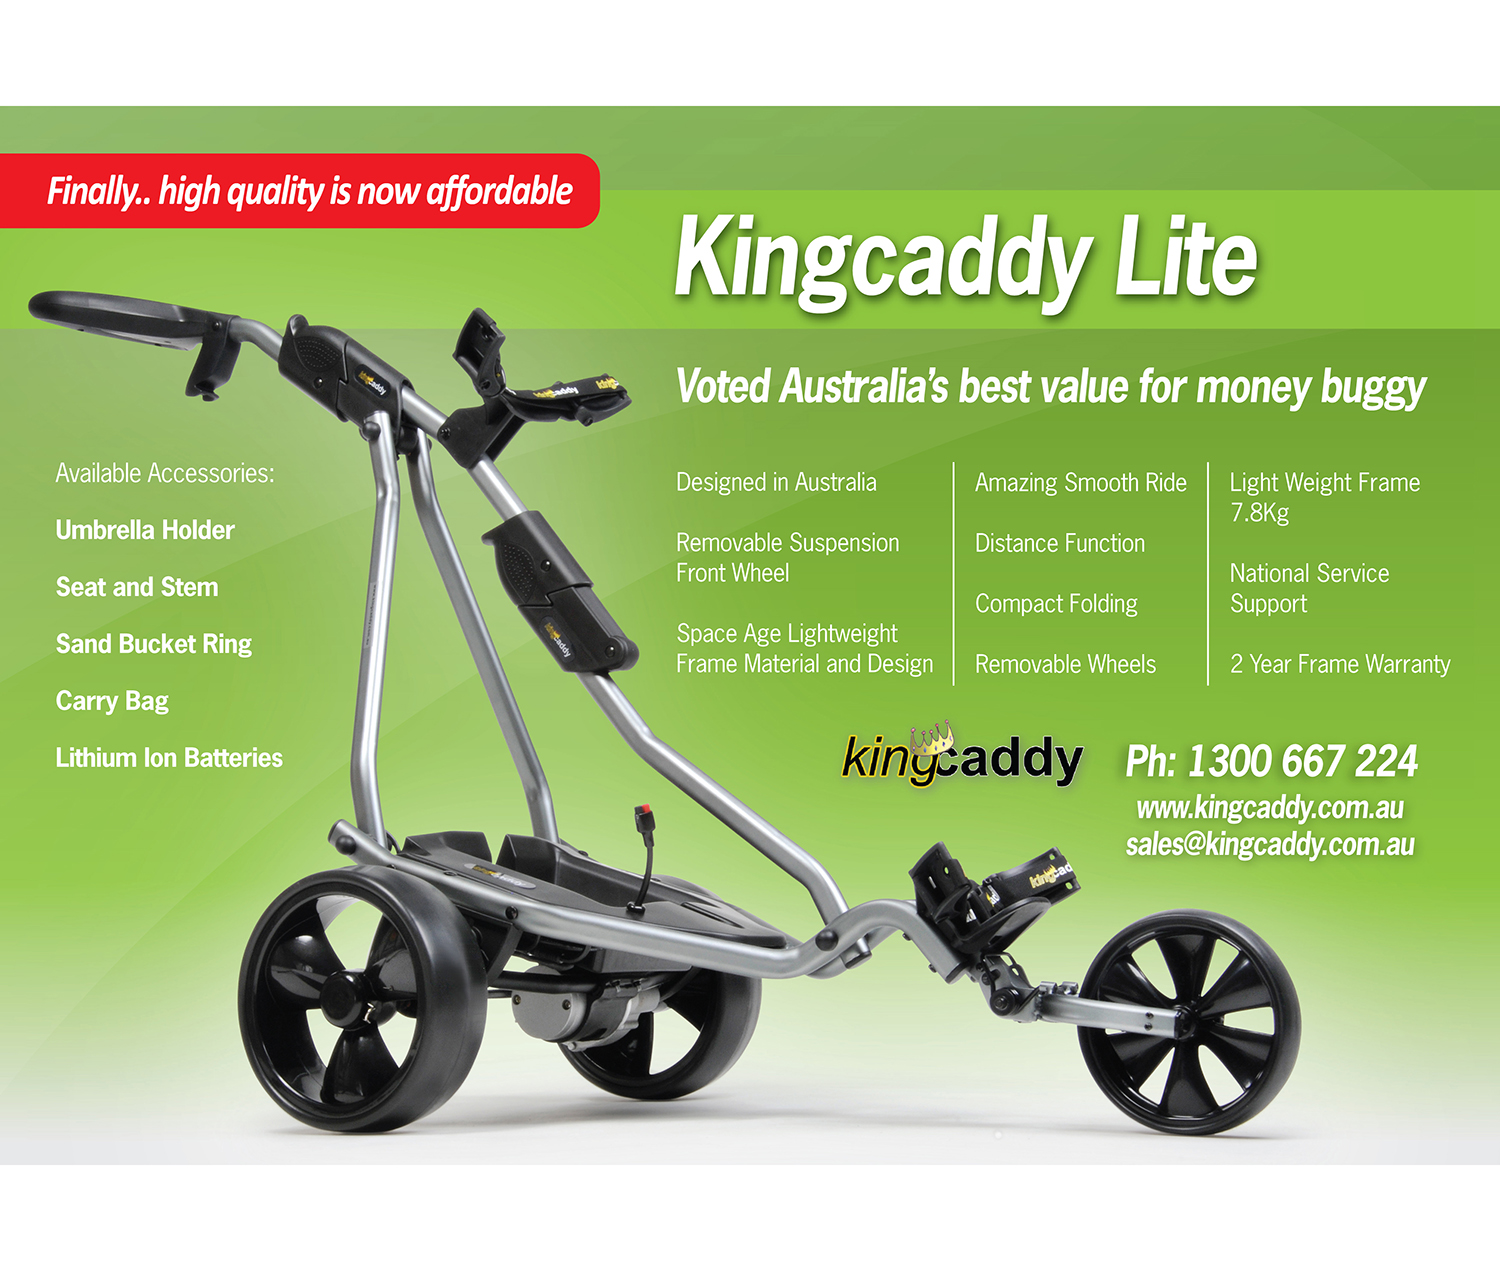 Kingcaddy-a4-lite-brochure-design